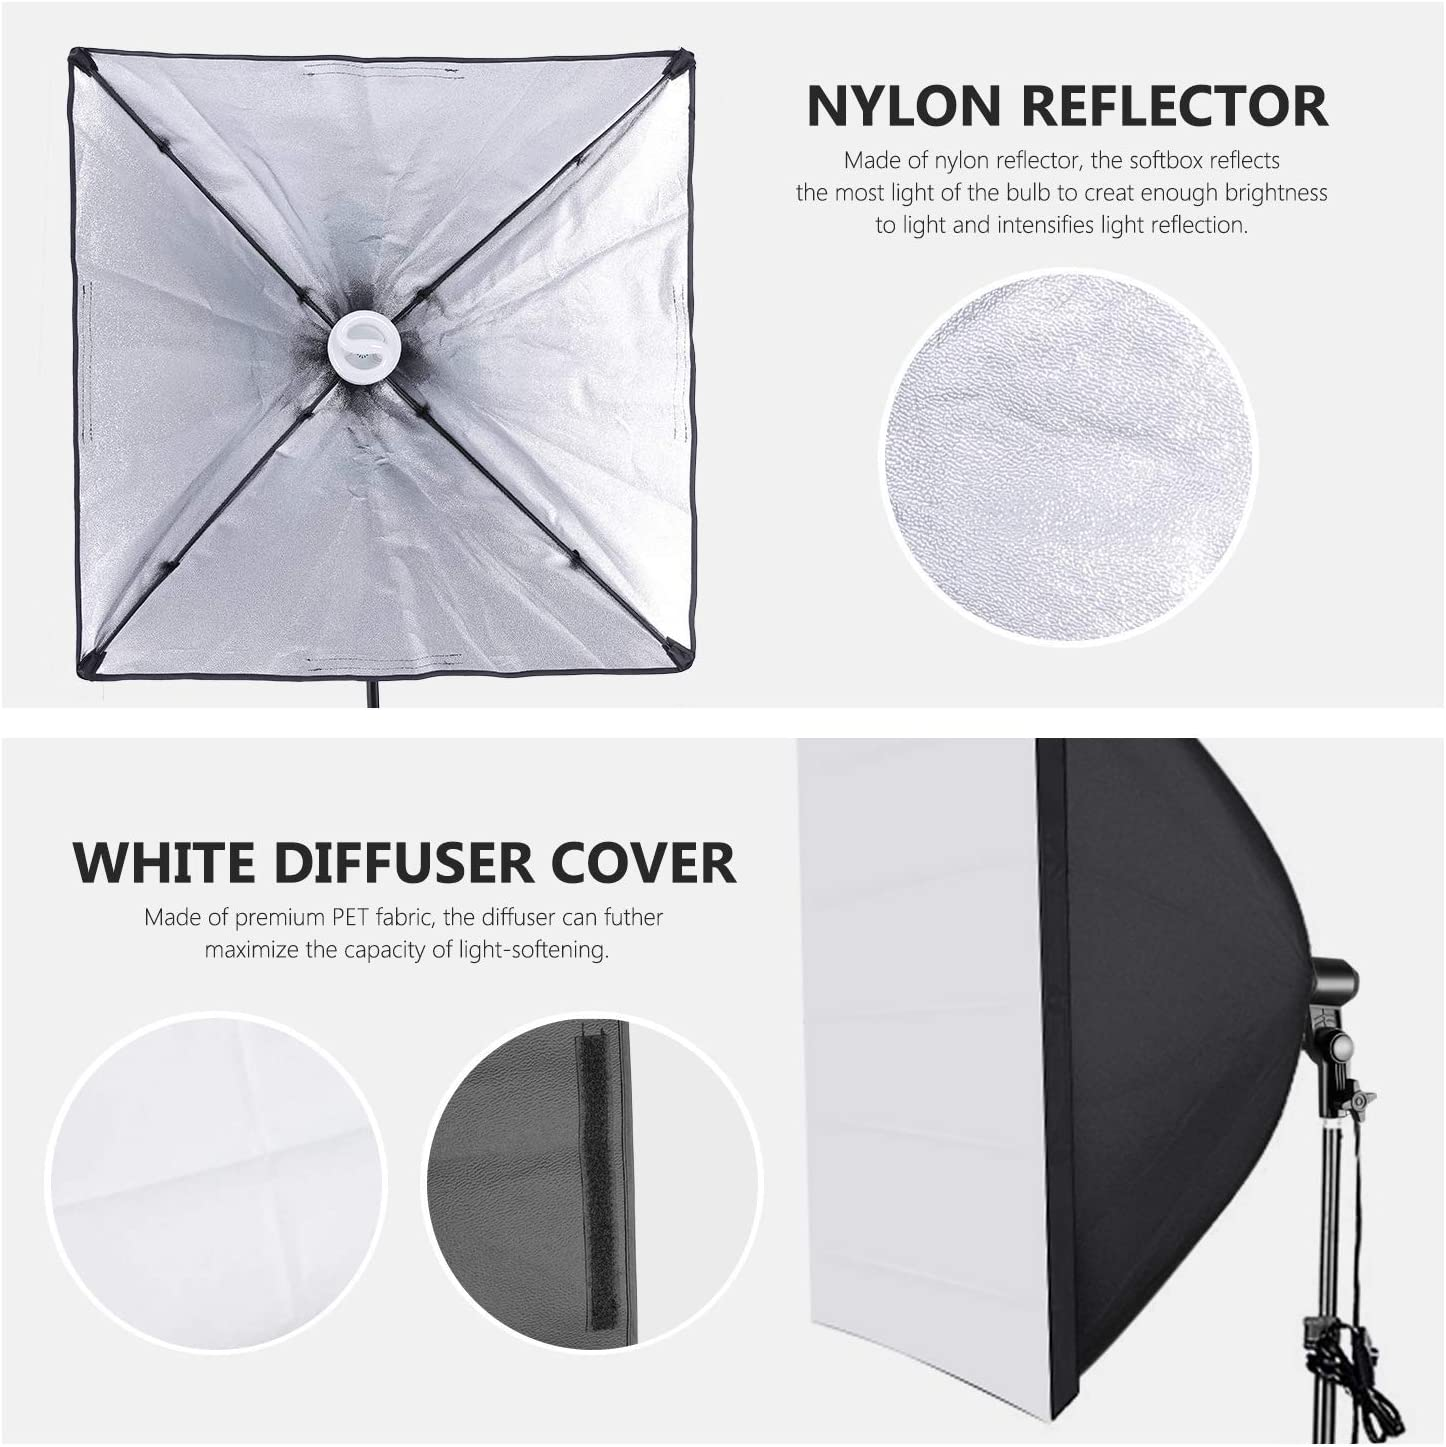 Neewer 700W Professional Photography 24x24 inches//60x60 Centimeters Softbox with E27 Socket Light Lighting Kit